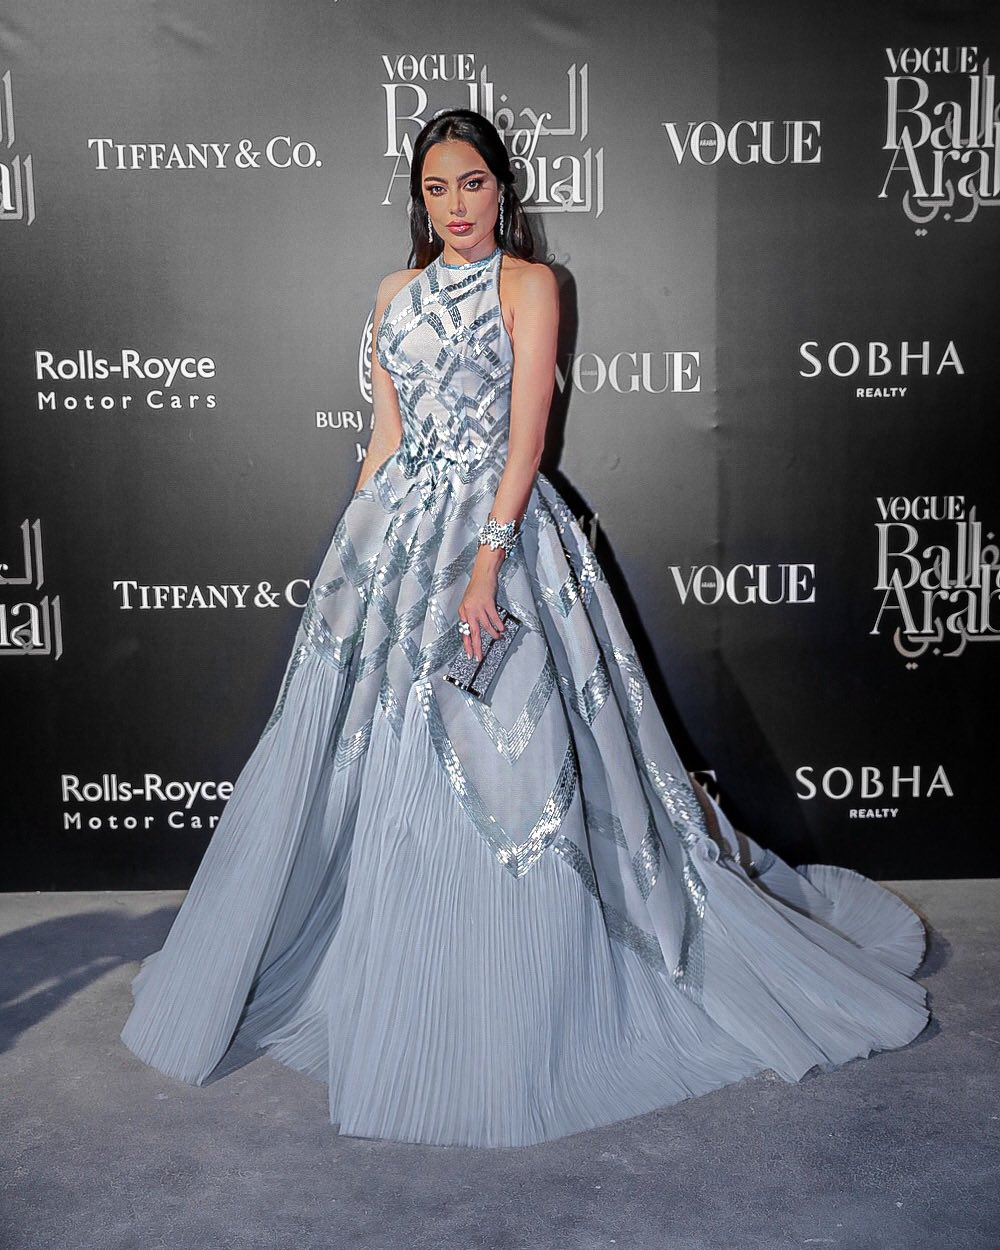 Rami Al Ali On Twitter Fashion Influencer Fatima Almomen Falmomen Looks Effortless In Our Voluminous Haute Couture Gown From The Autumn Winter 18 19 Collection During The Ball Of Arabia Hosted By Voguearabia Ramialali